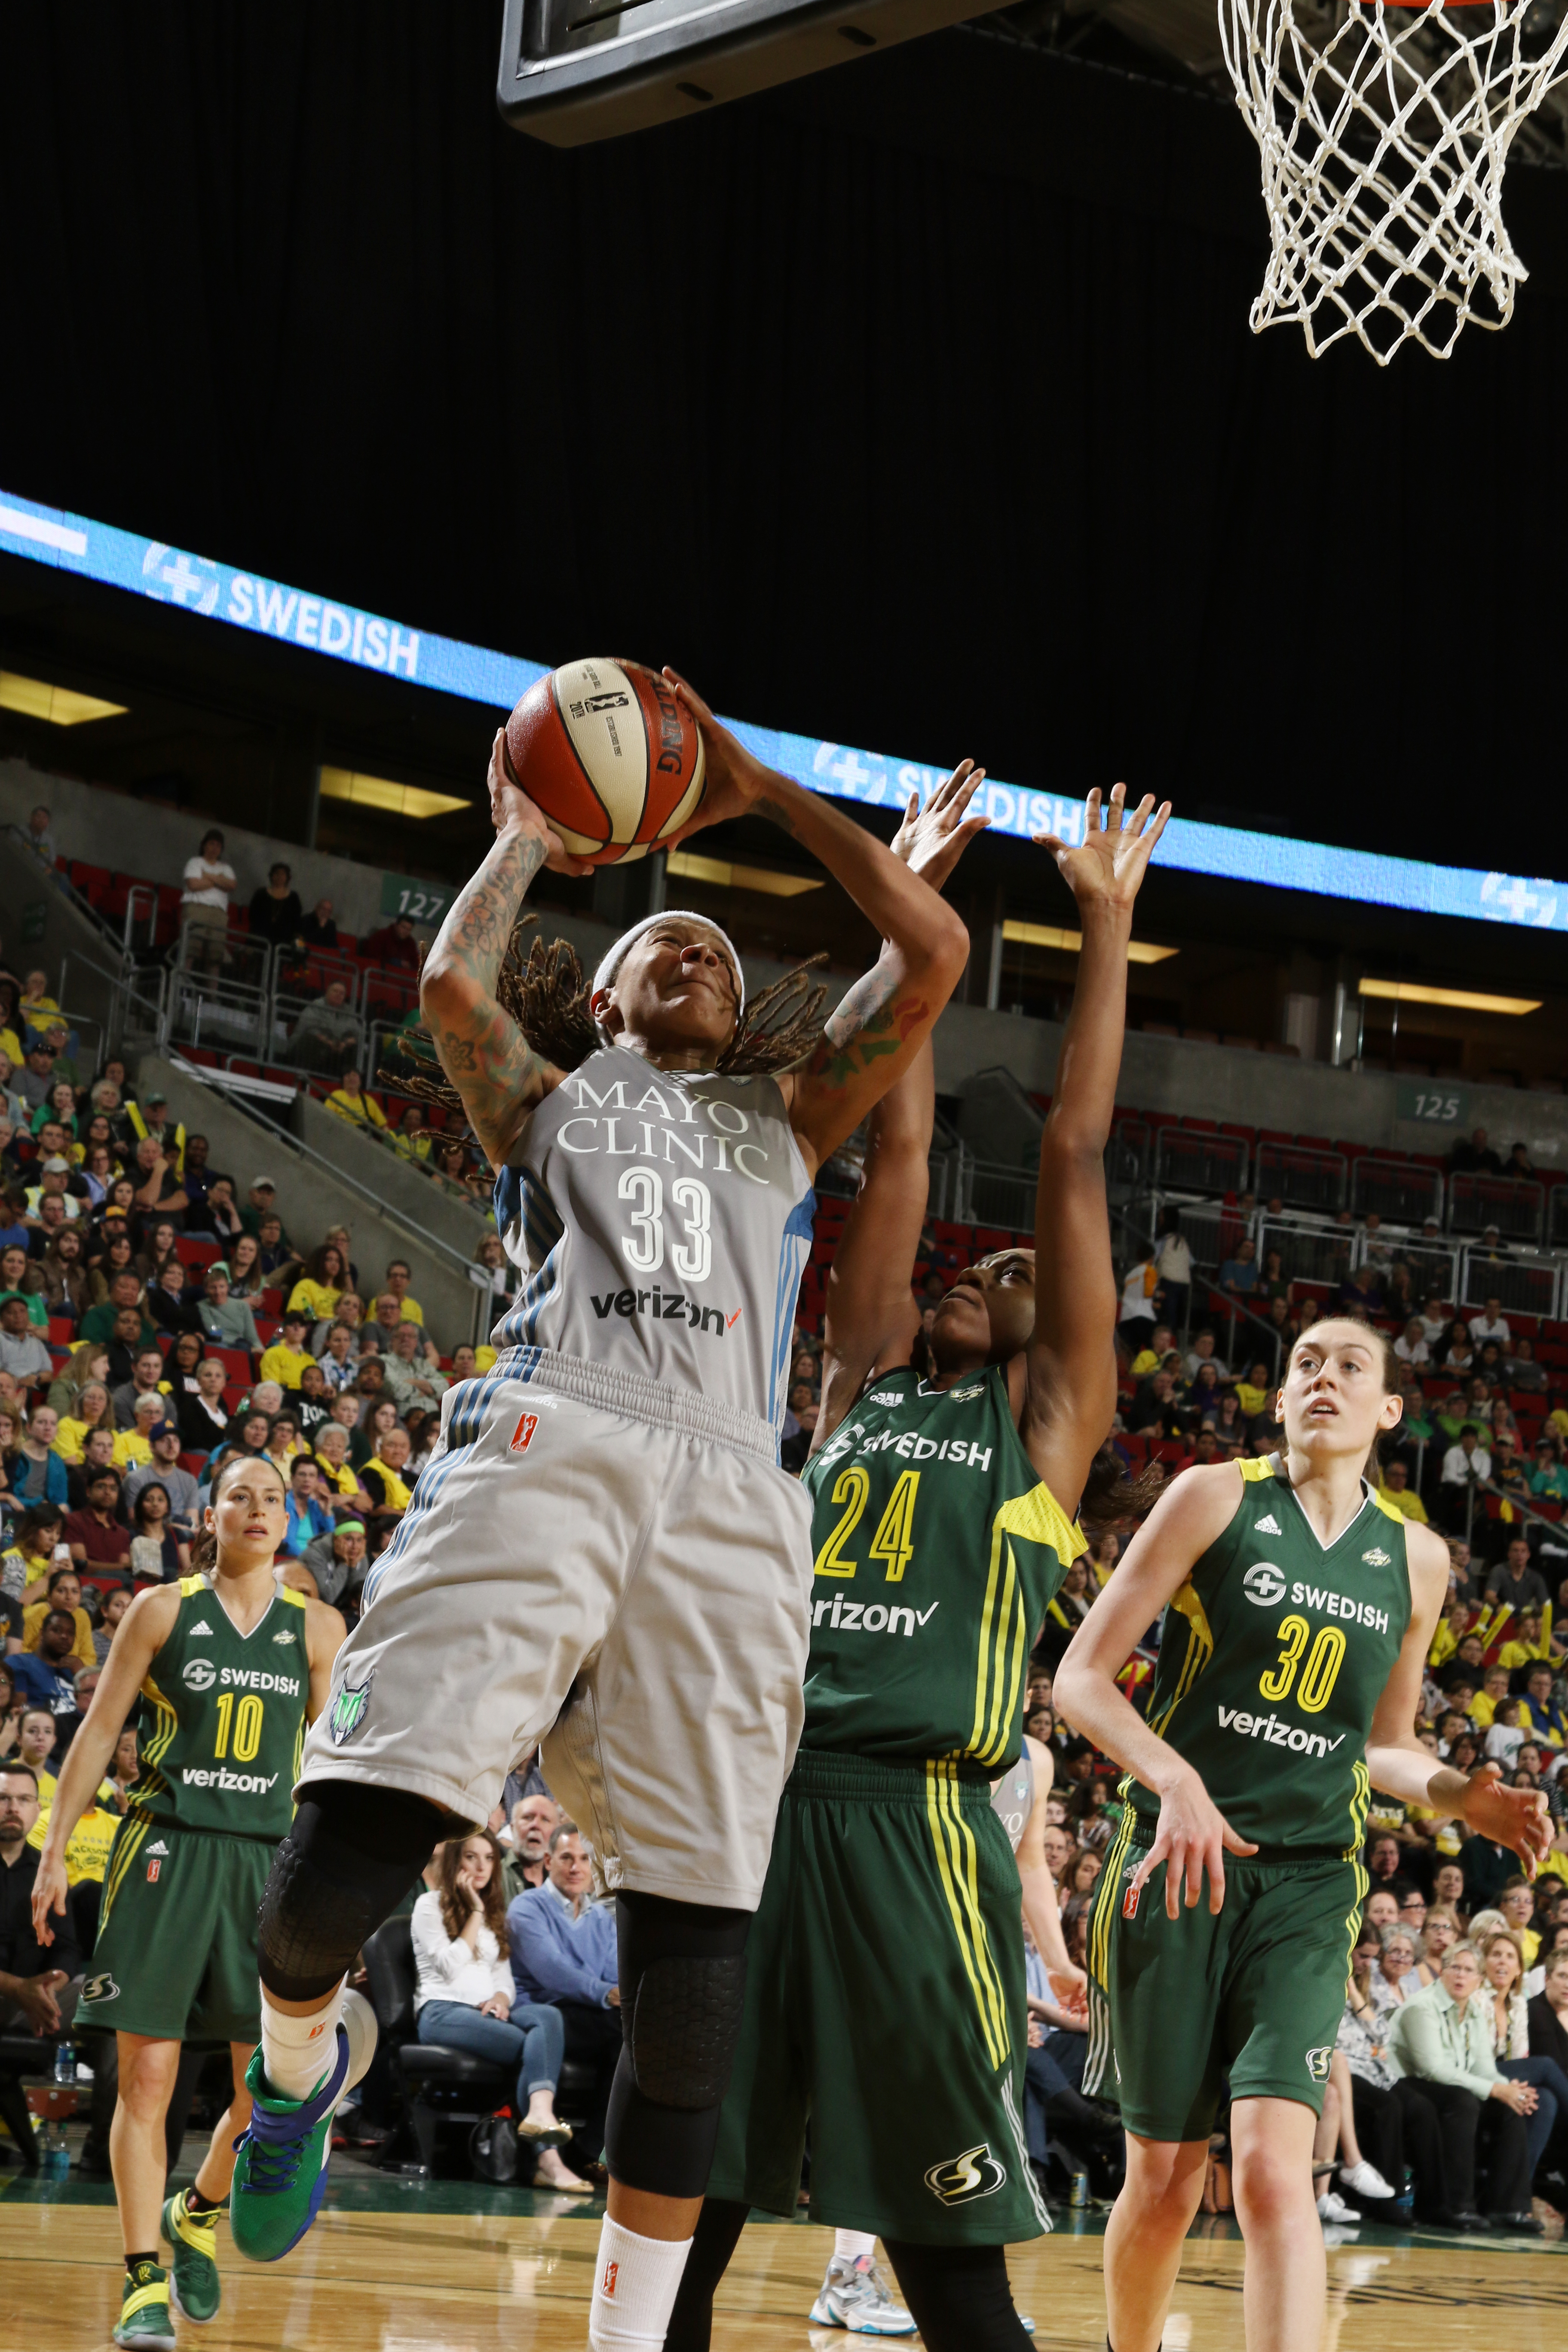 SEATTLE, WA - MAY 22:  Seimone Augustus #33 of the Minnesota Lynx shoots the ball against the Seattle Storm on May 22, 2016 at KeyArena in Seattle, Washington. NOTE TO USER: User expressly acknowledges and agrees that, by downloading and or using this photograph, user is consenting to the terms and conditions of Getty Images License Agreement. Mandatory Copyright Notice: Copyright 2016 NBAE (Photo by Josh Huston/NBAE via Getty Images)